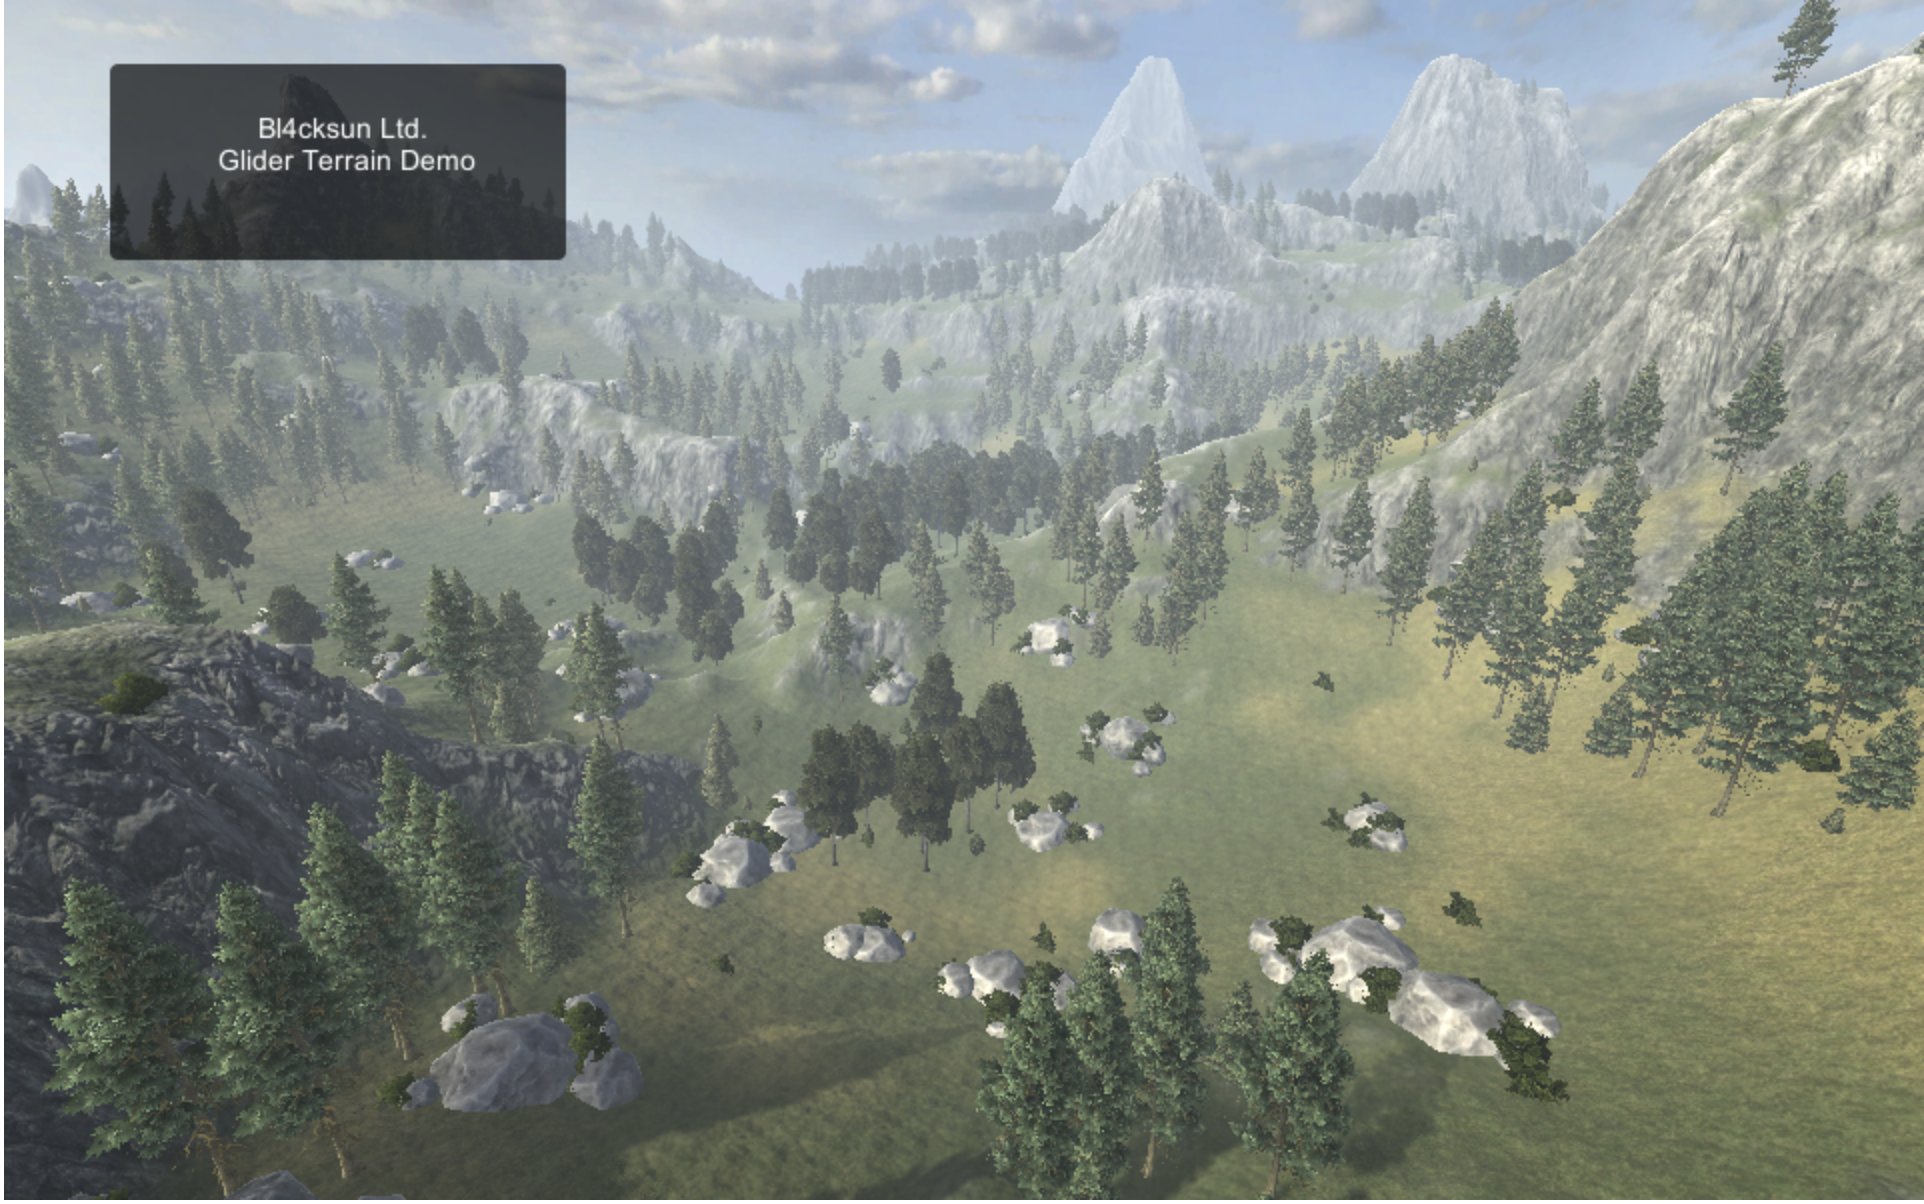 Terrain Demo screen capture